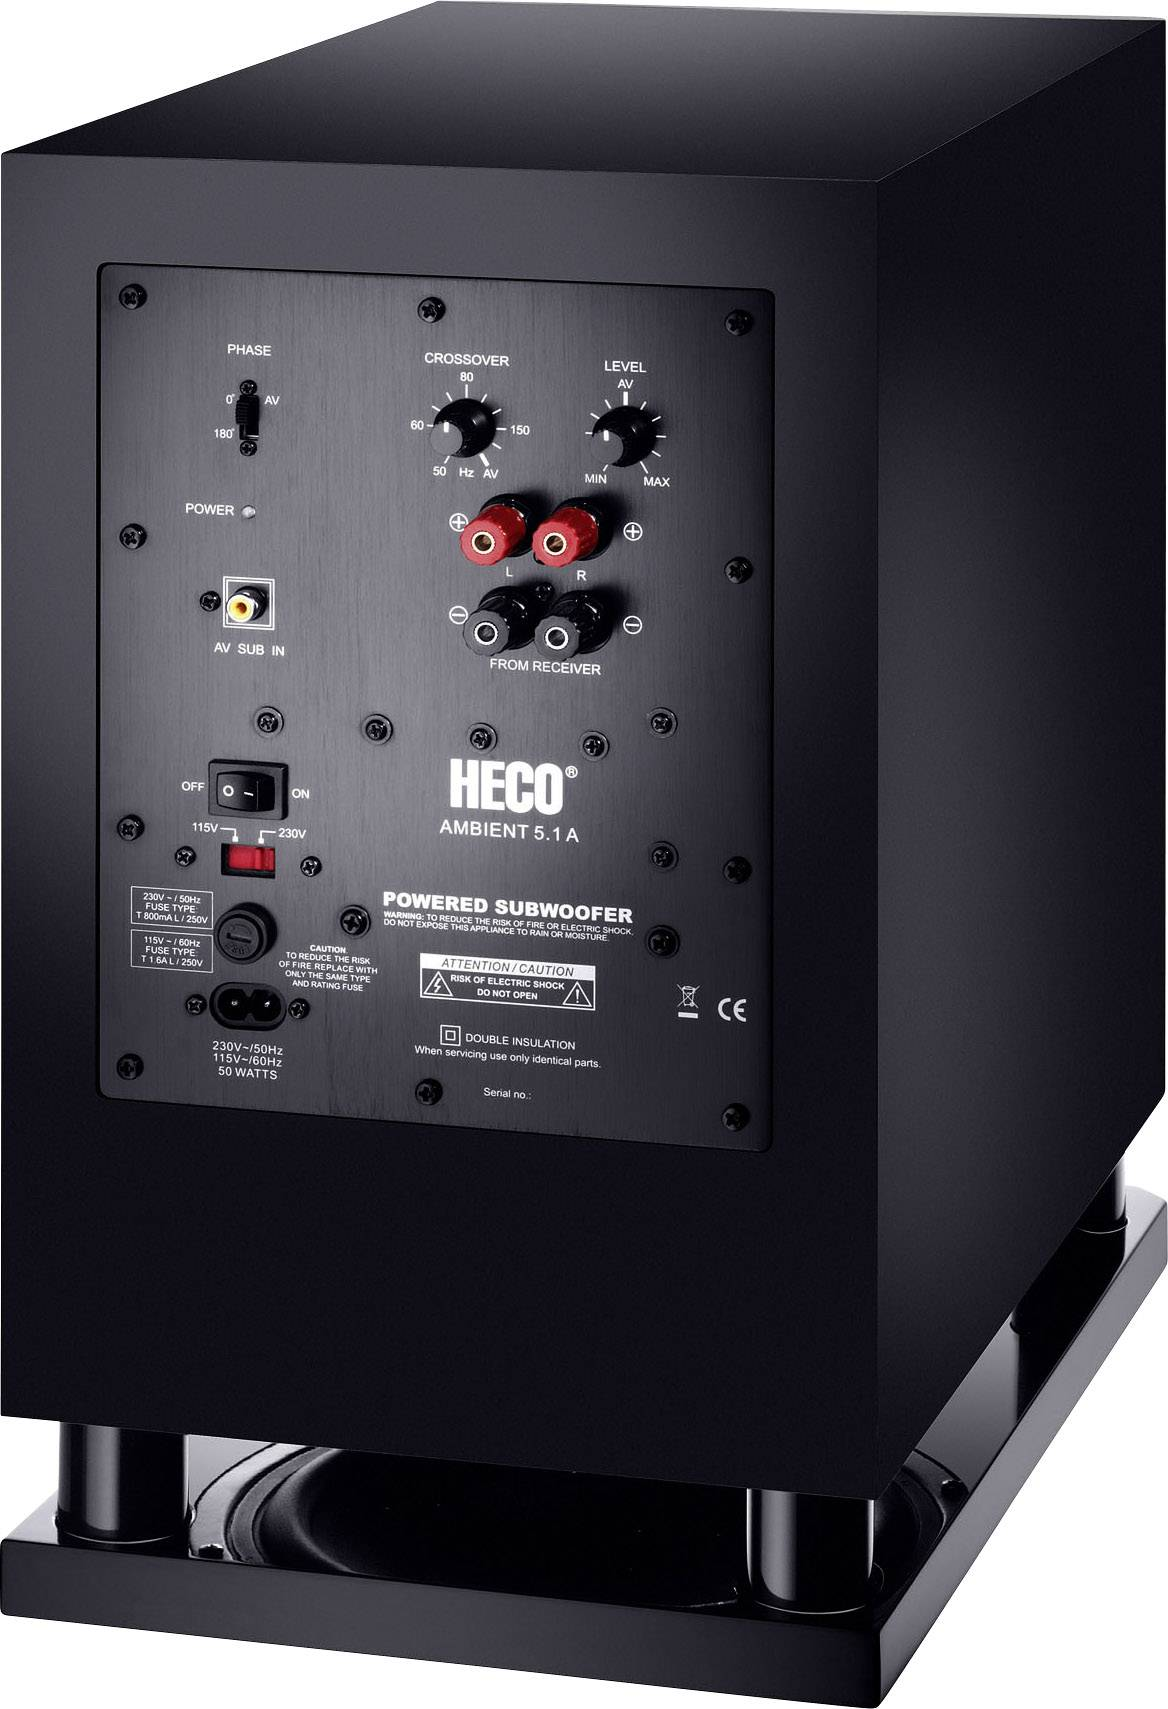 Heco ambient 5